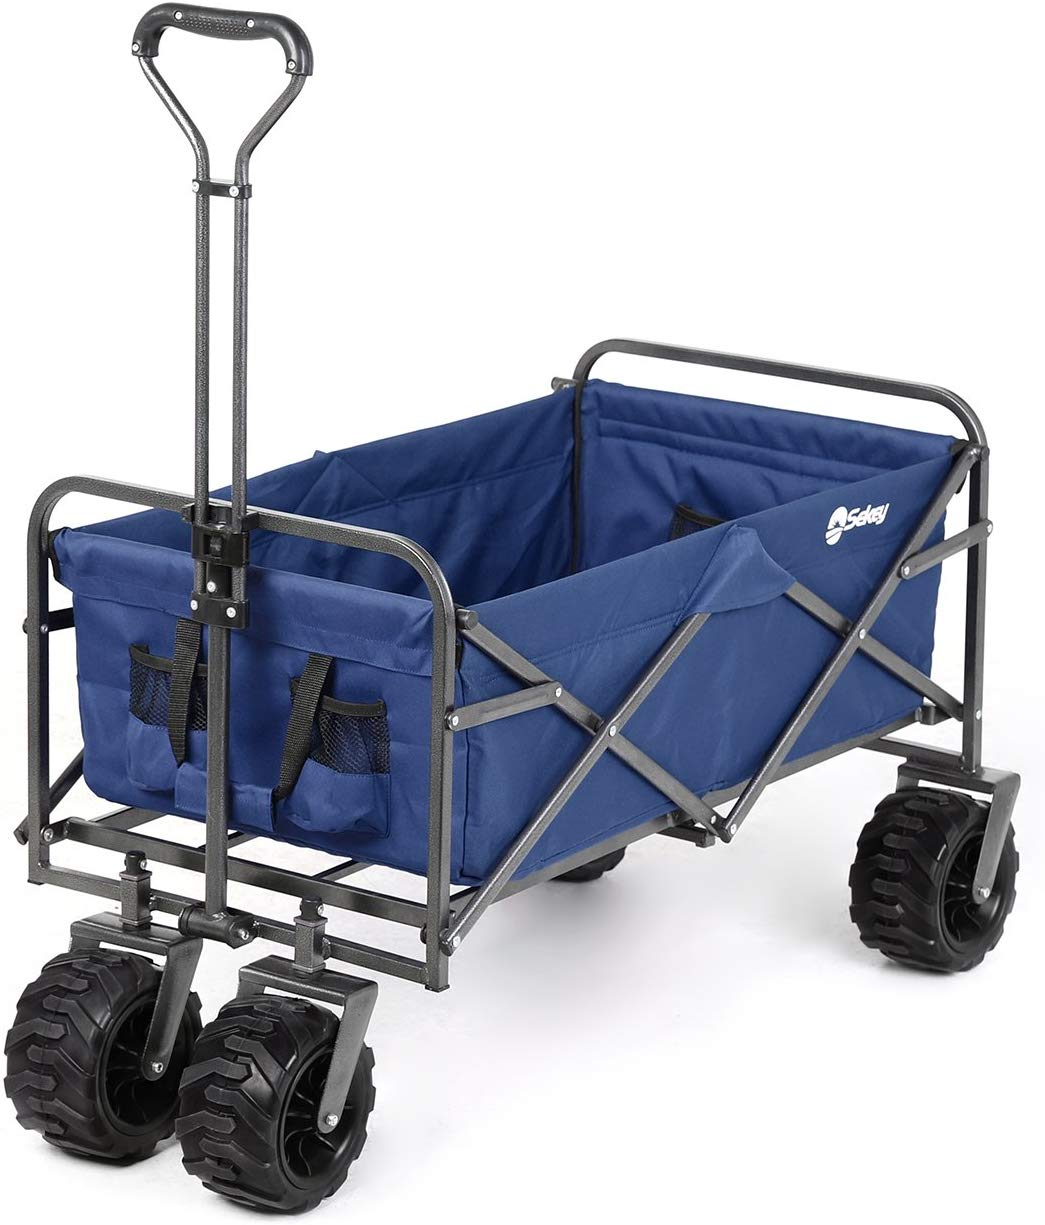 Sekey Folding Wagon Cart  | Best Beach Carts